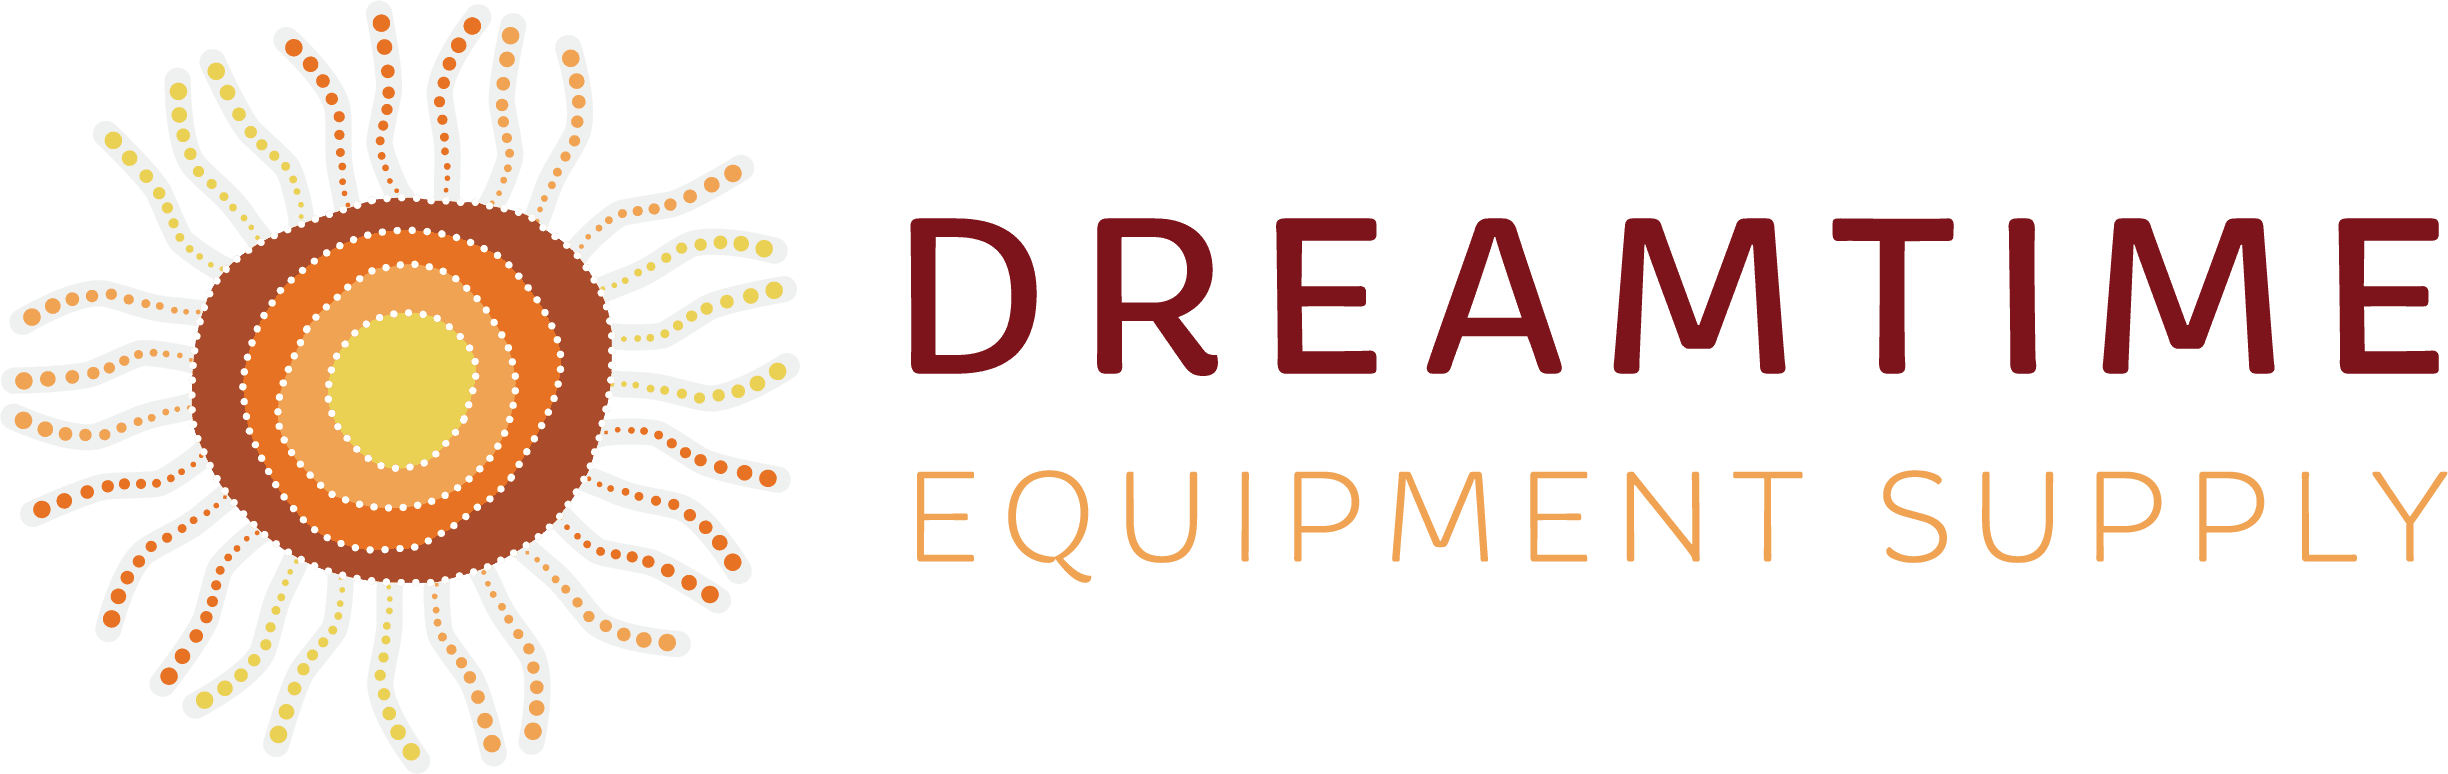 Dreamtime Equipment Supply Premium Sourcing Company For The